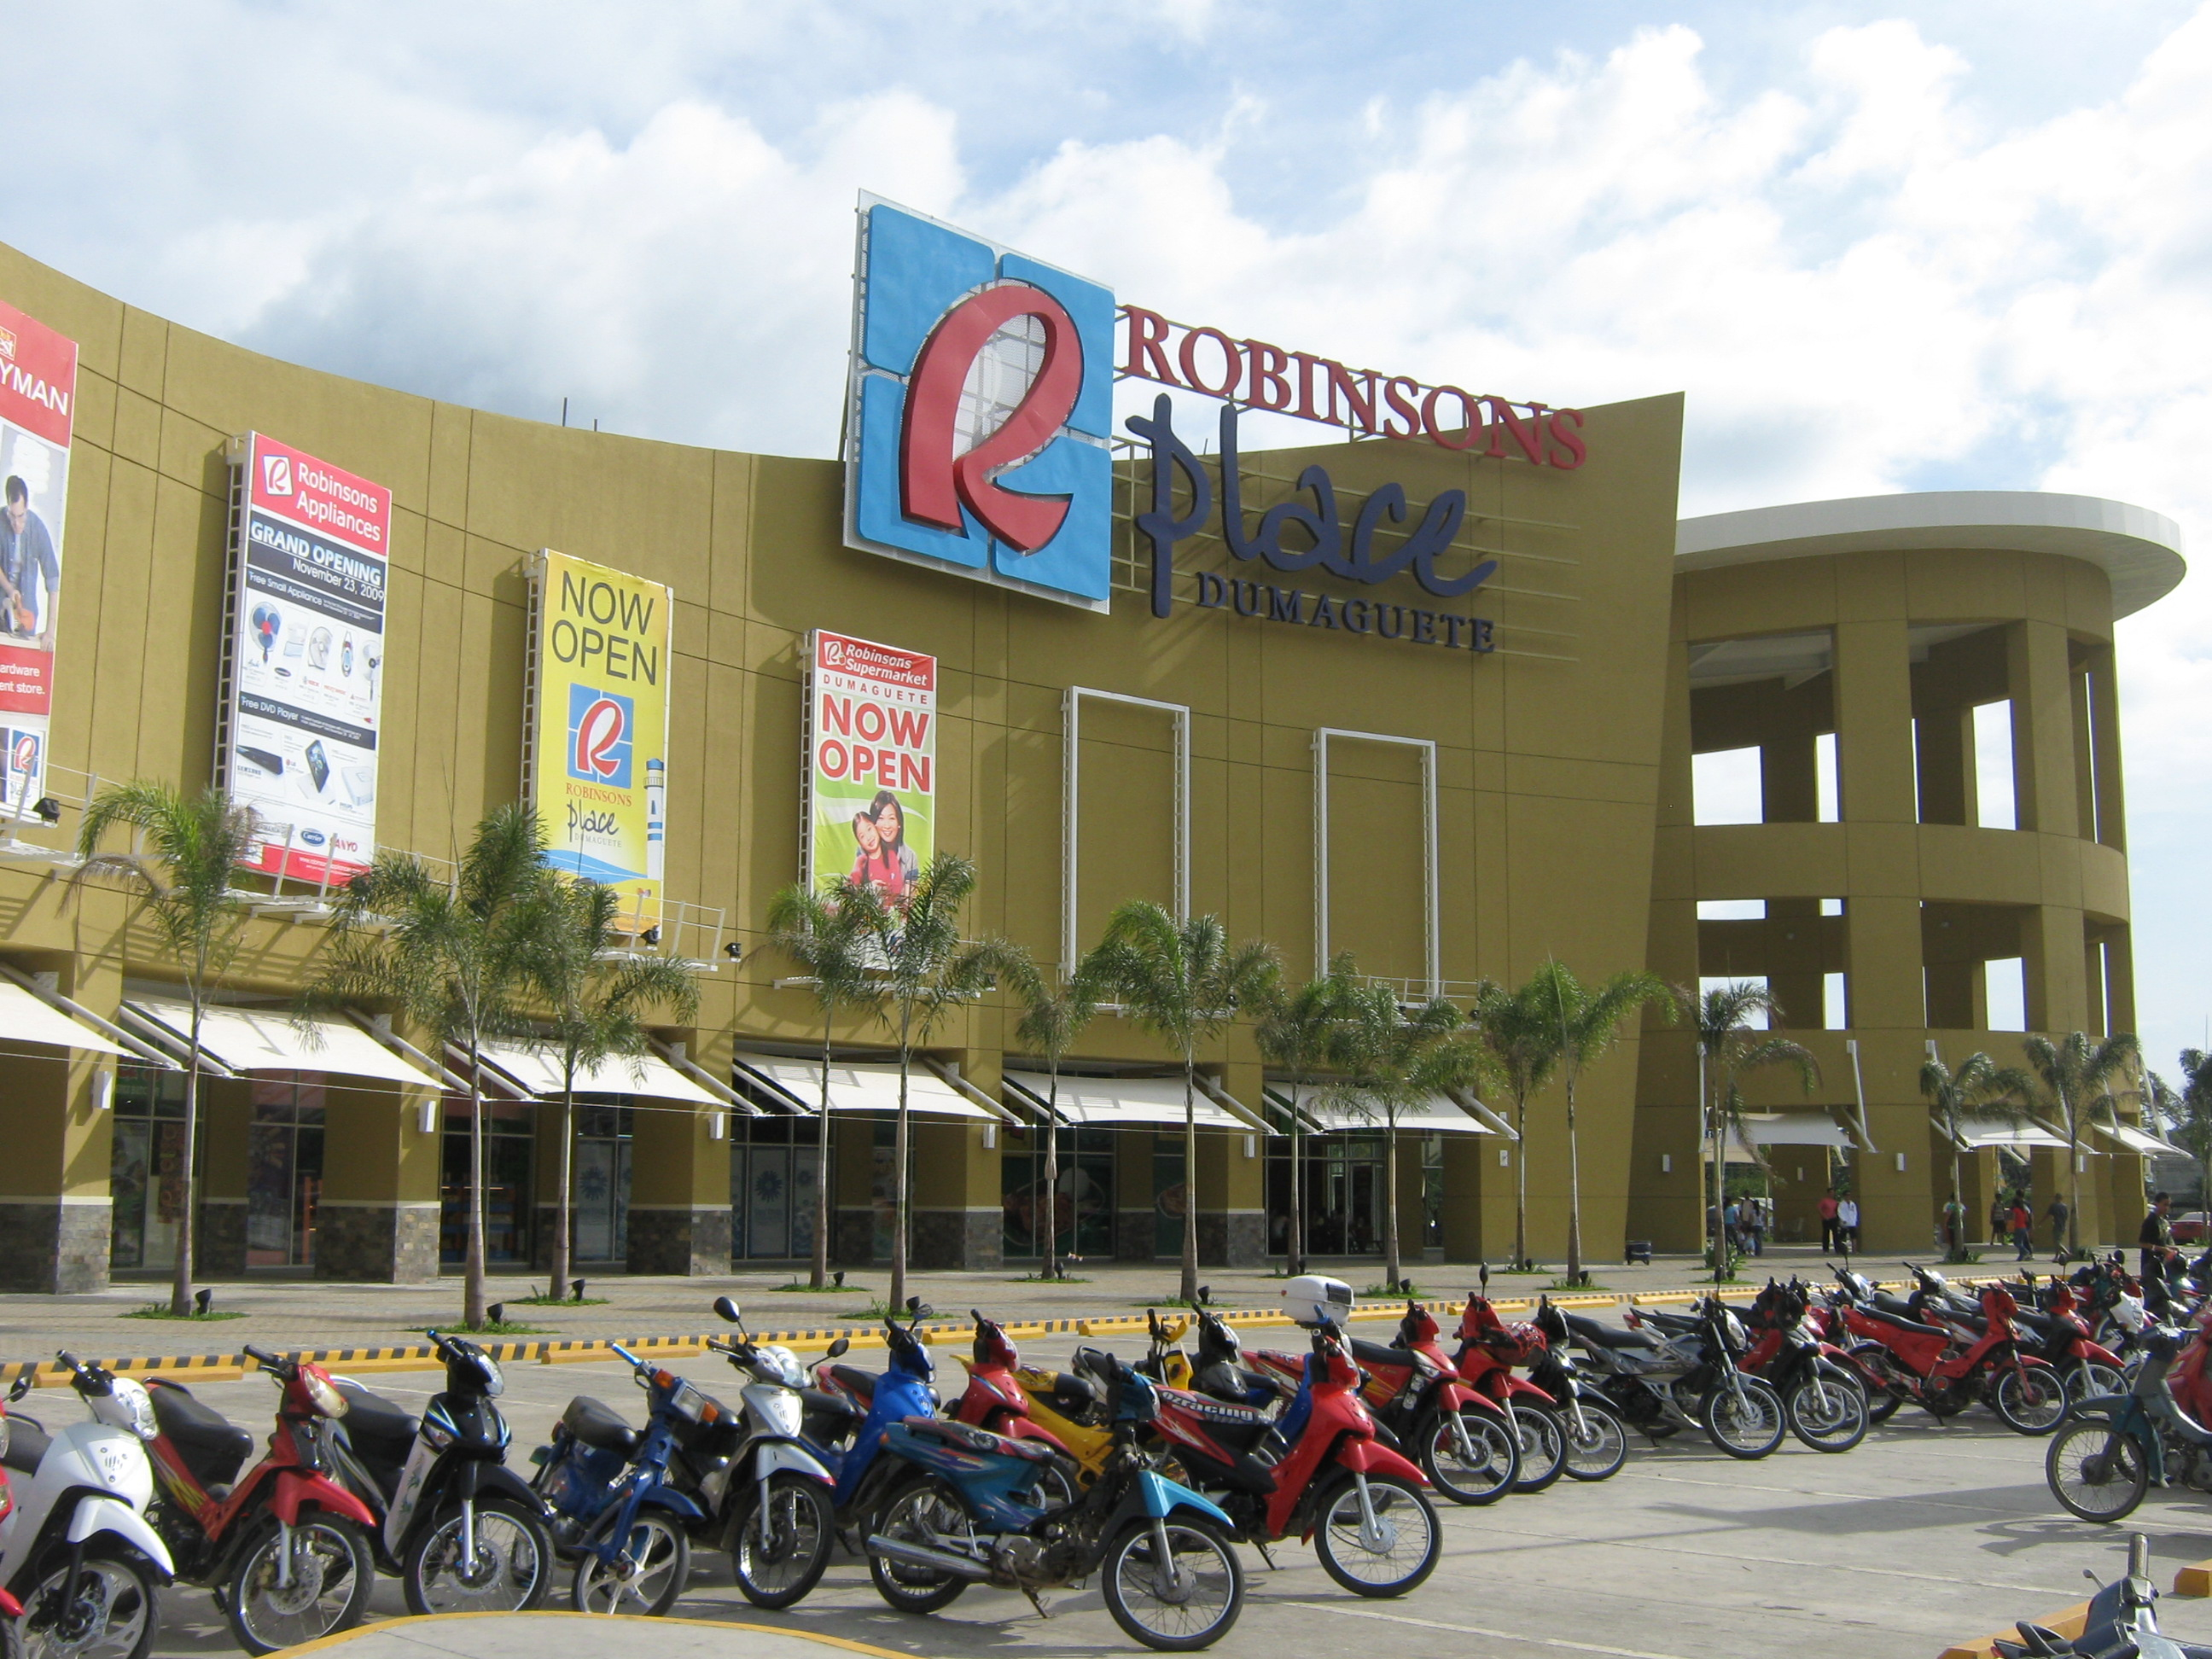 Robinsons Place Manila is a 7-level shopping complex that offers the widest range of merchandise and services from over a thousand local and international retail shops, dining outlets, entertainment facilities and service centers.